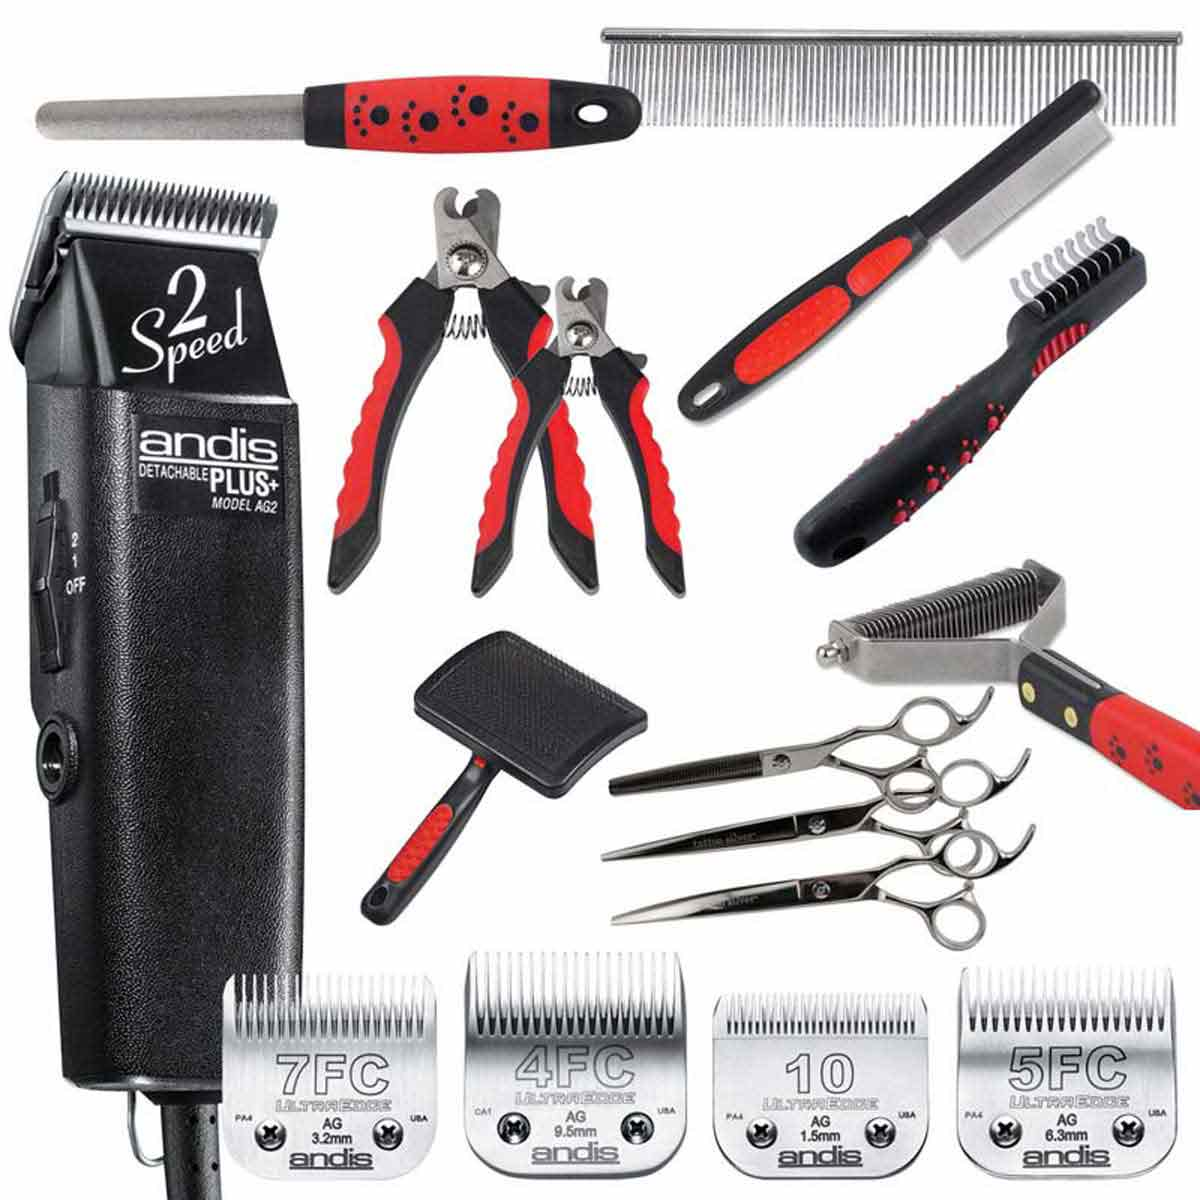 Grooming Kit includes Clippers, Tools, Blades, and more!